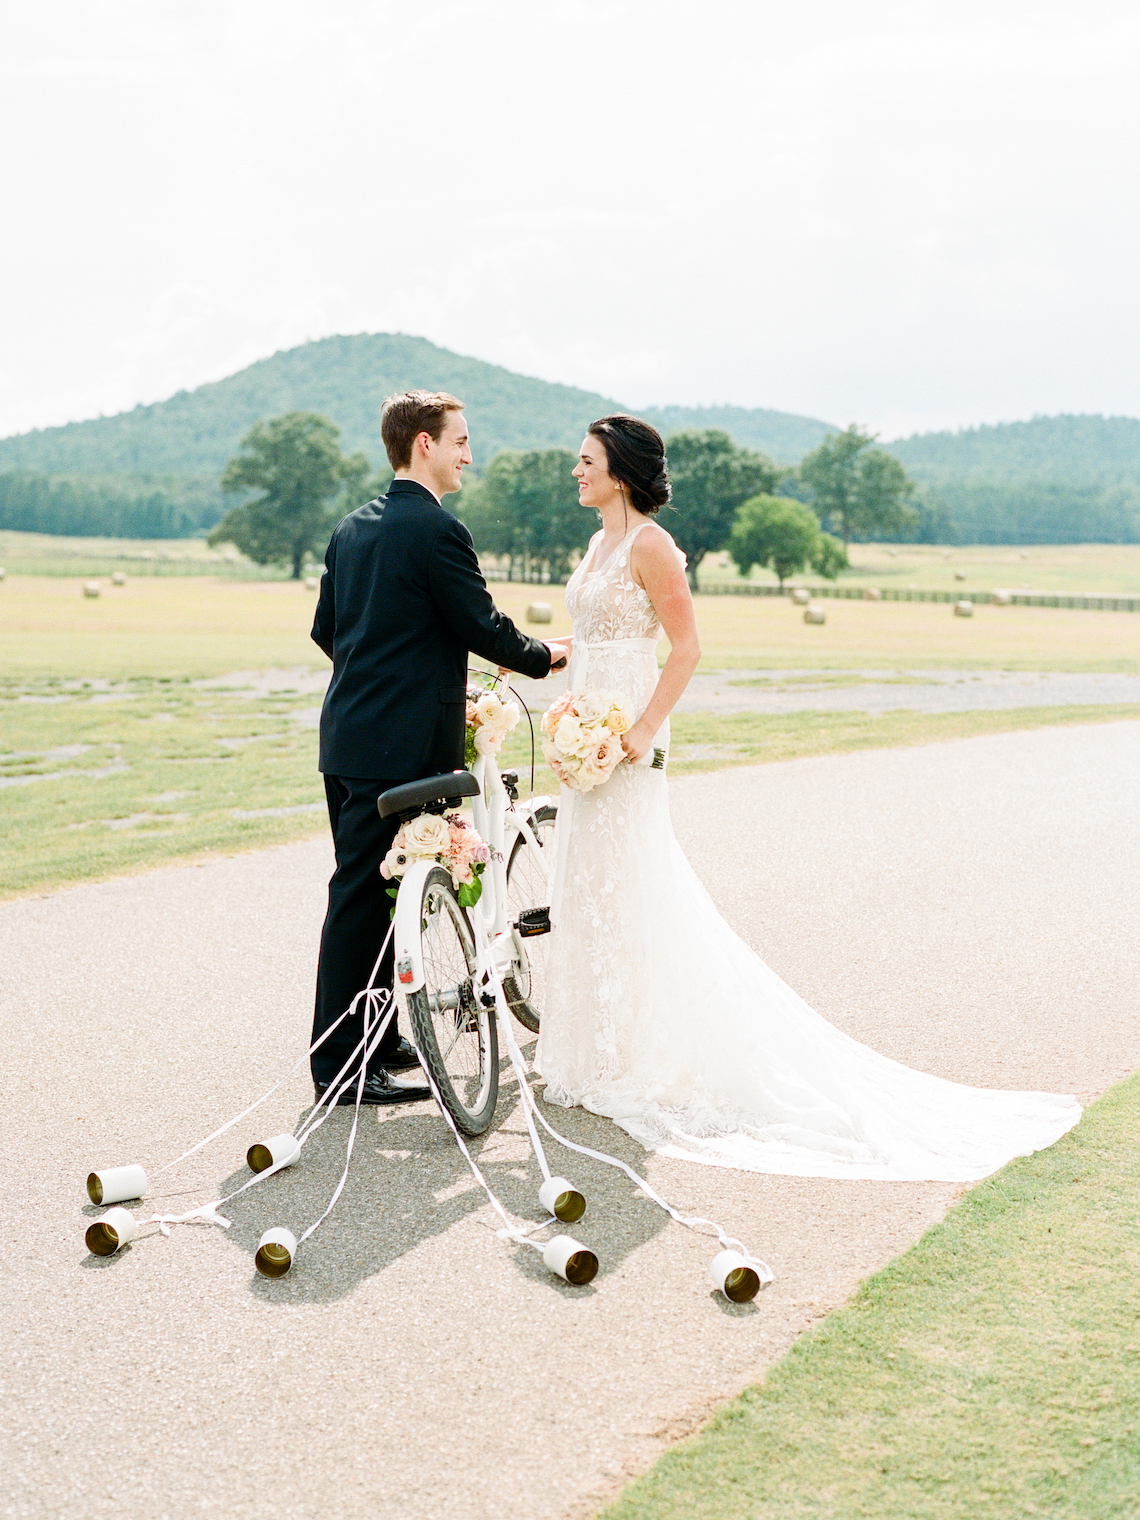 Feminine Floral-Filled Alabama Wedding Inspiration with a Getaway Bicycle – Davy Whitener 31